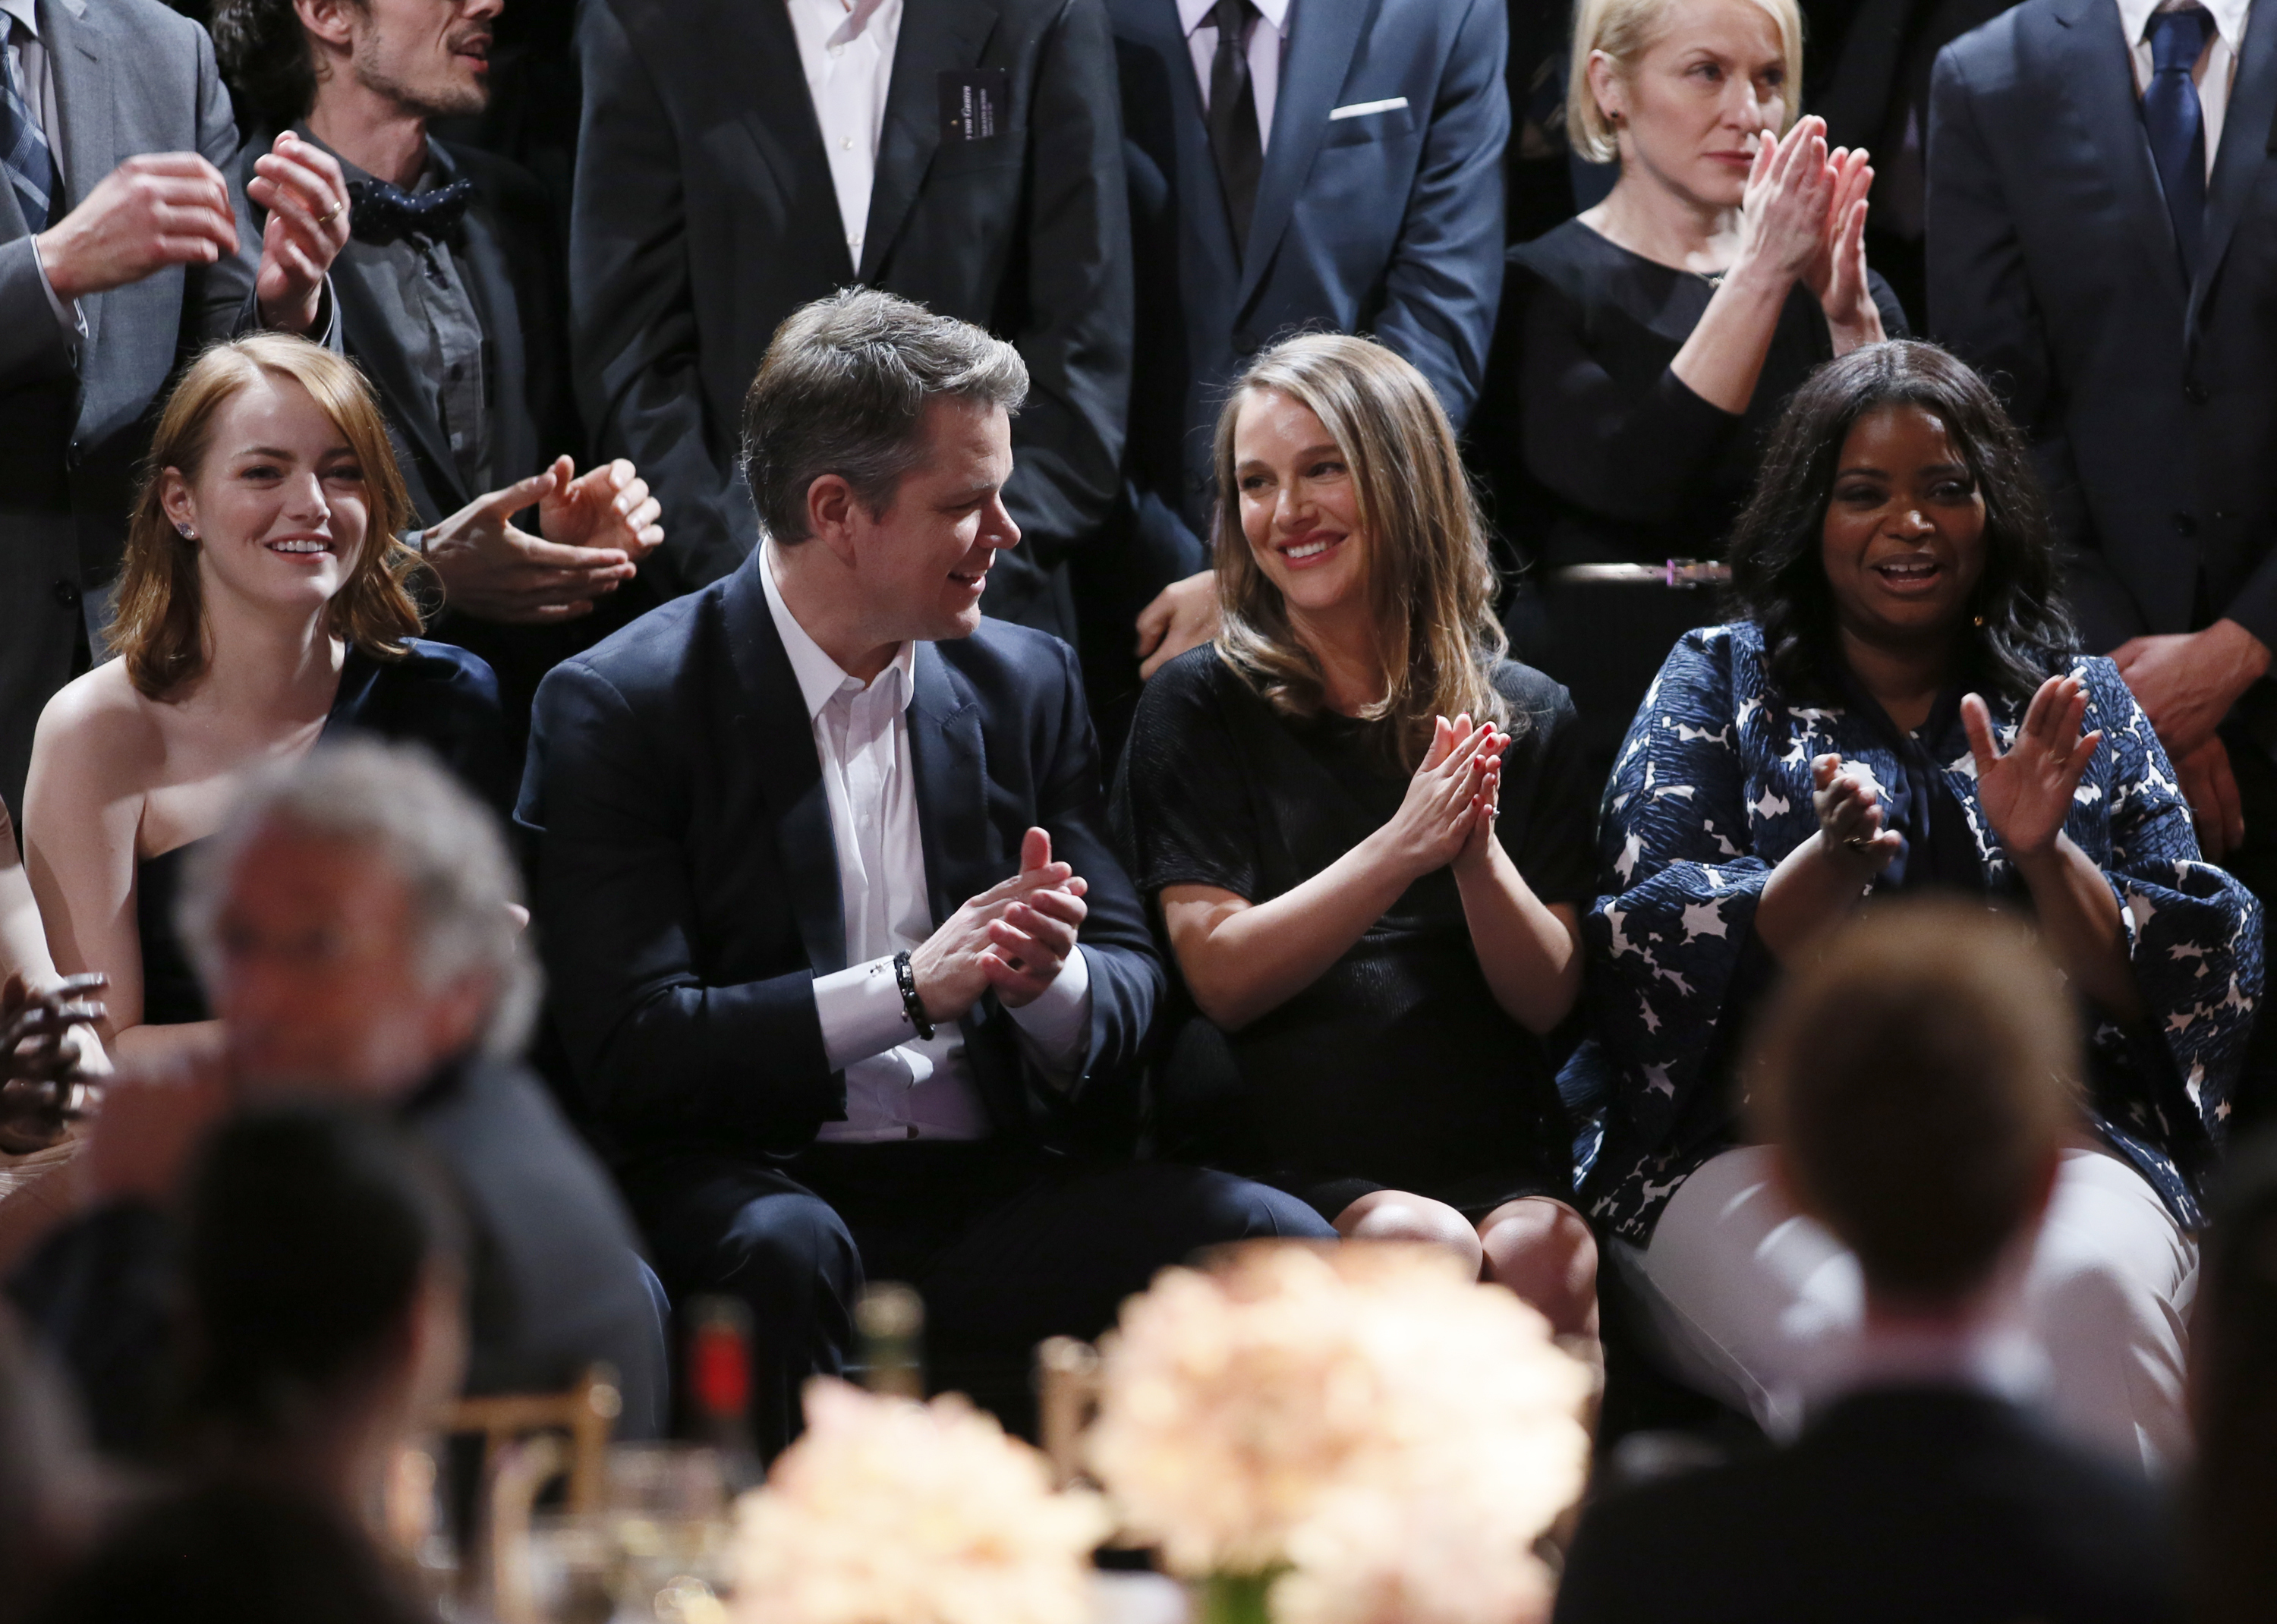 Emma Stone, from left, Matt Damon, Natalie Portman and Octavia Spencer at the 89th Academy Awards Nominees Luncheon at The Beverly Hilton Hotel, Feb. 6, 2017, in Beverly Hills, Calif.